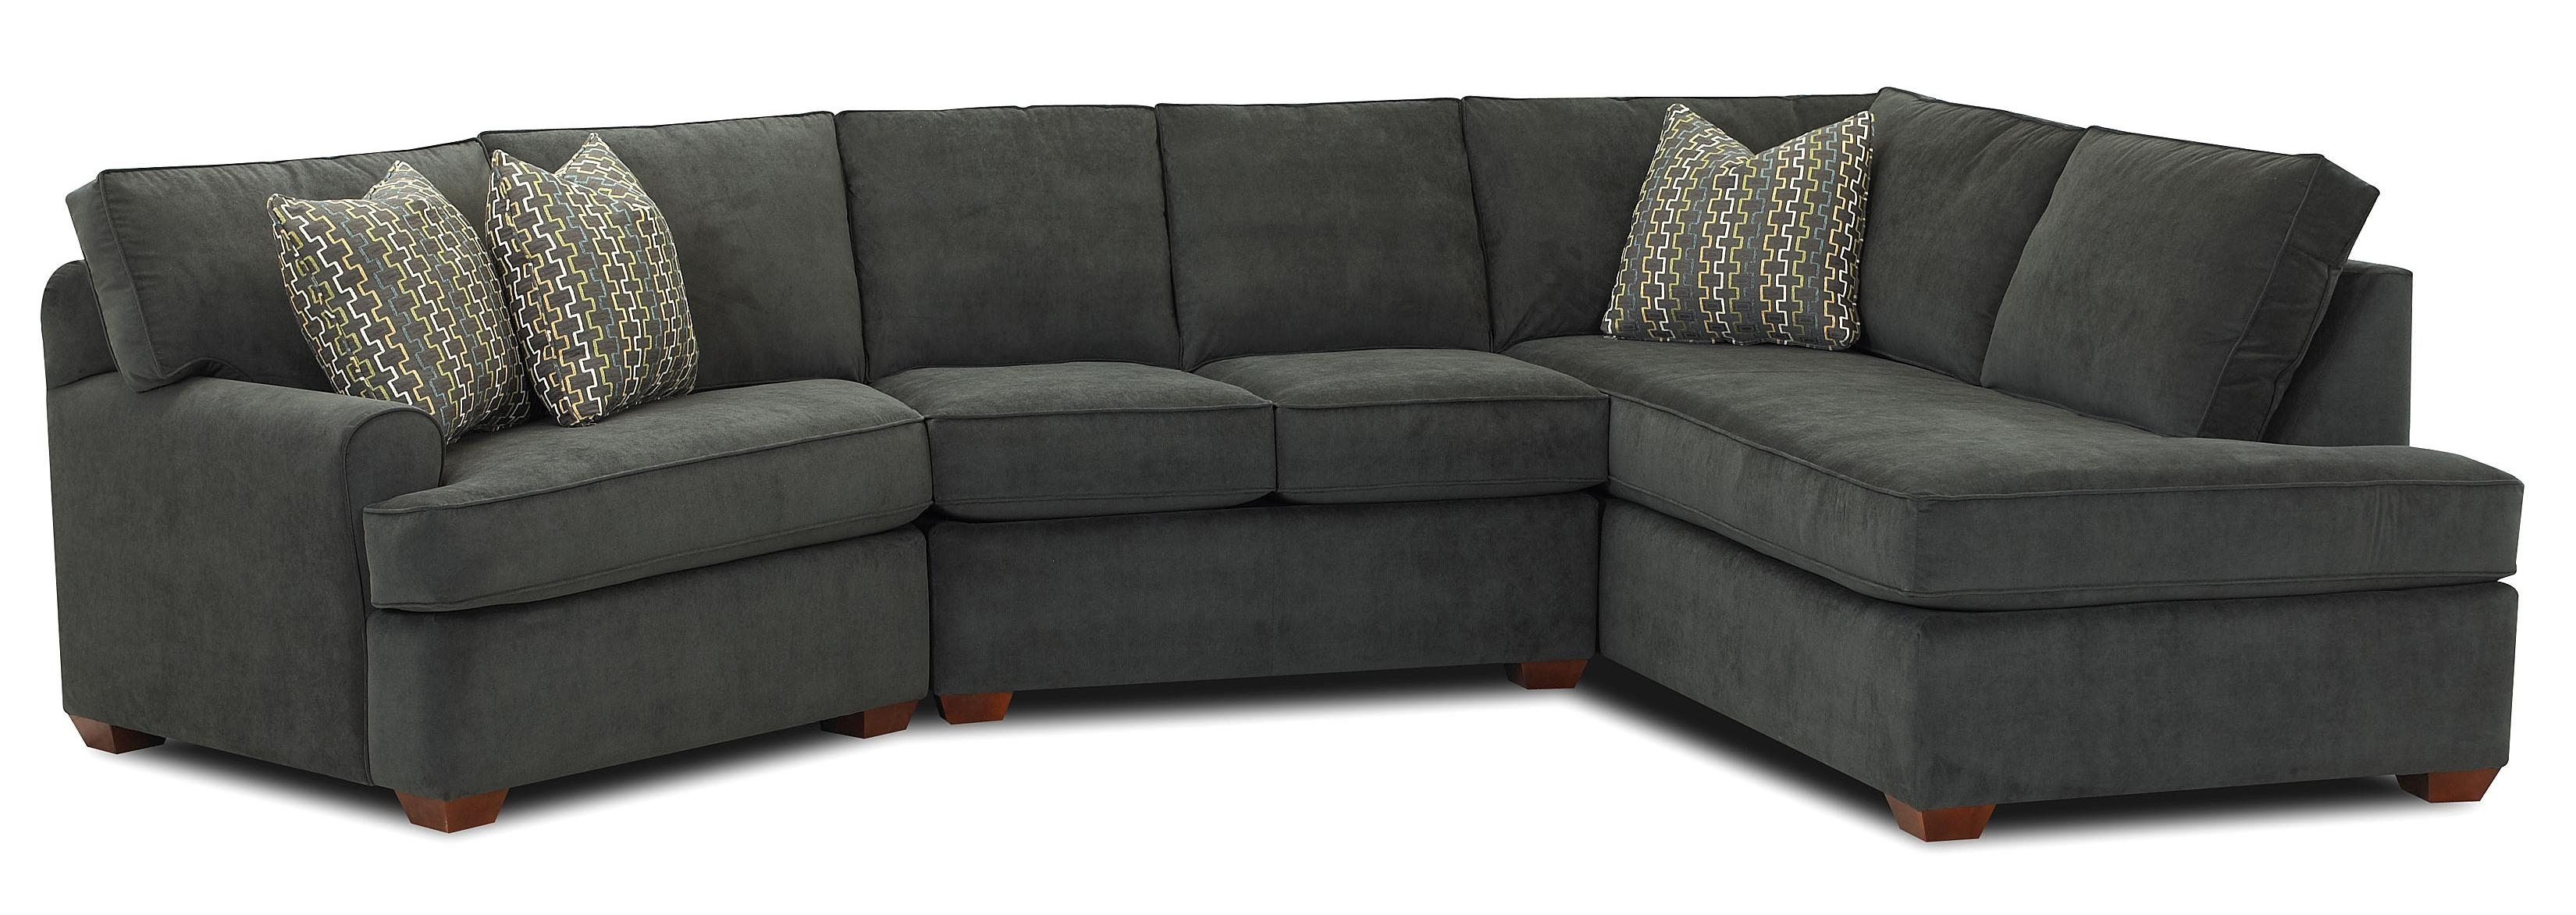 Sectional Sofas Chaise – 100 Images – Sectional With Ottoman And For Sectional Sofas With Chaise (View 7 of 10)